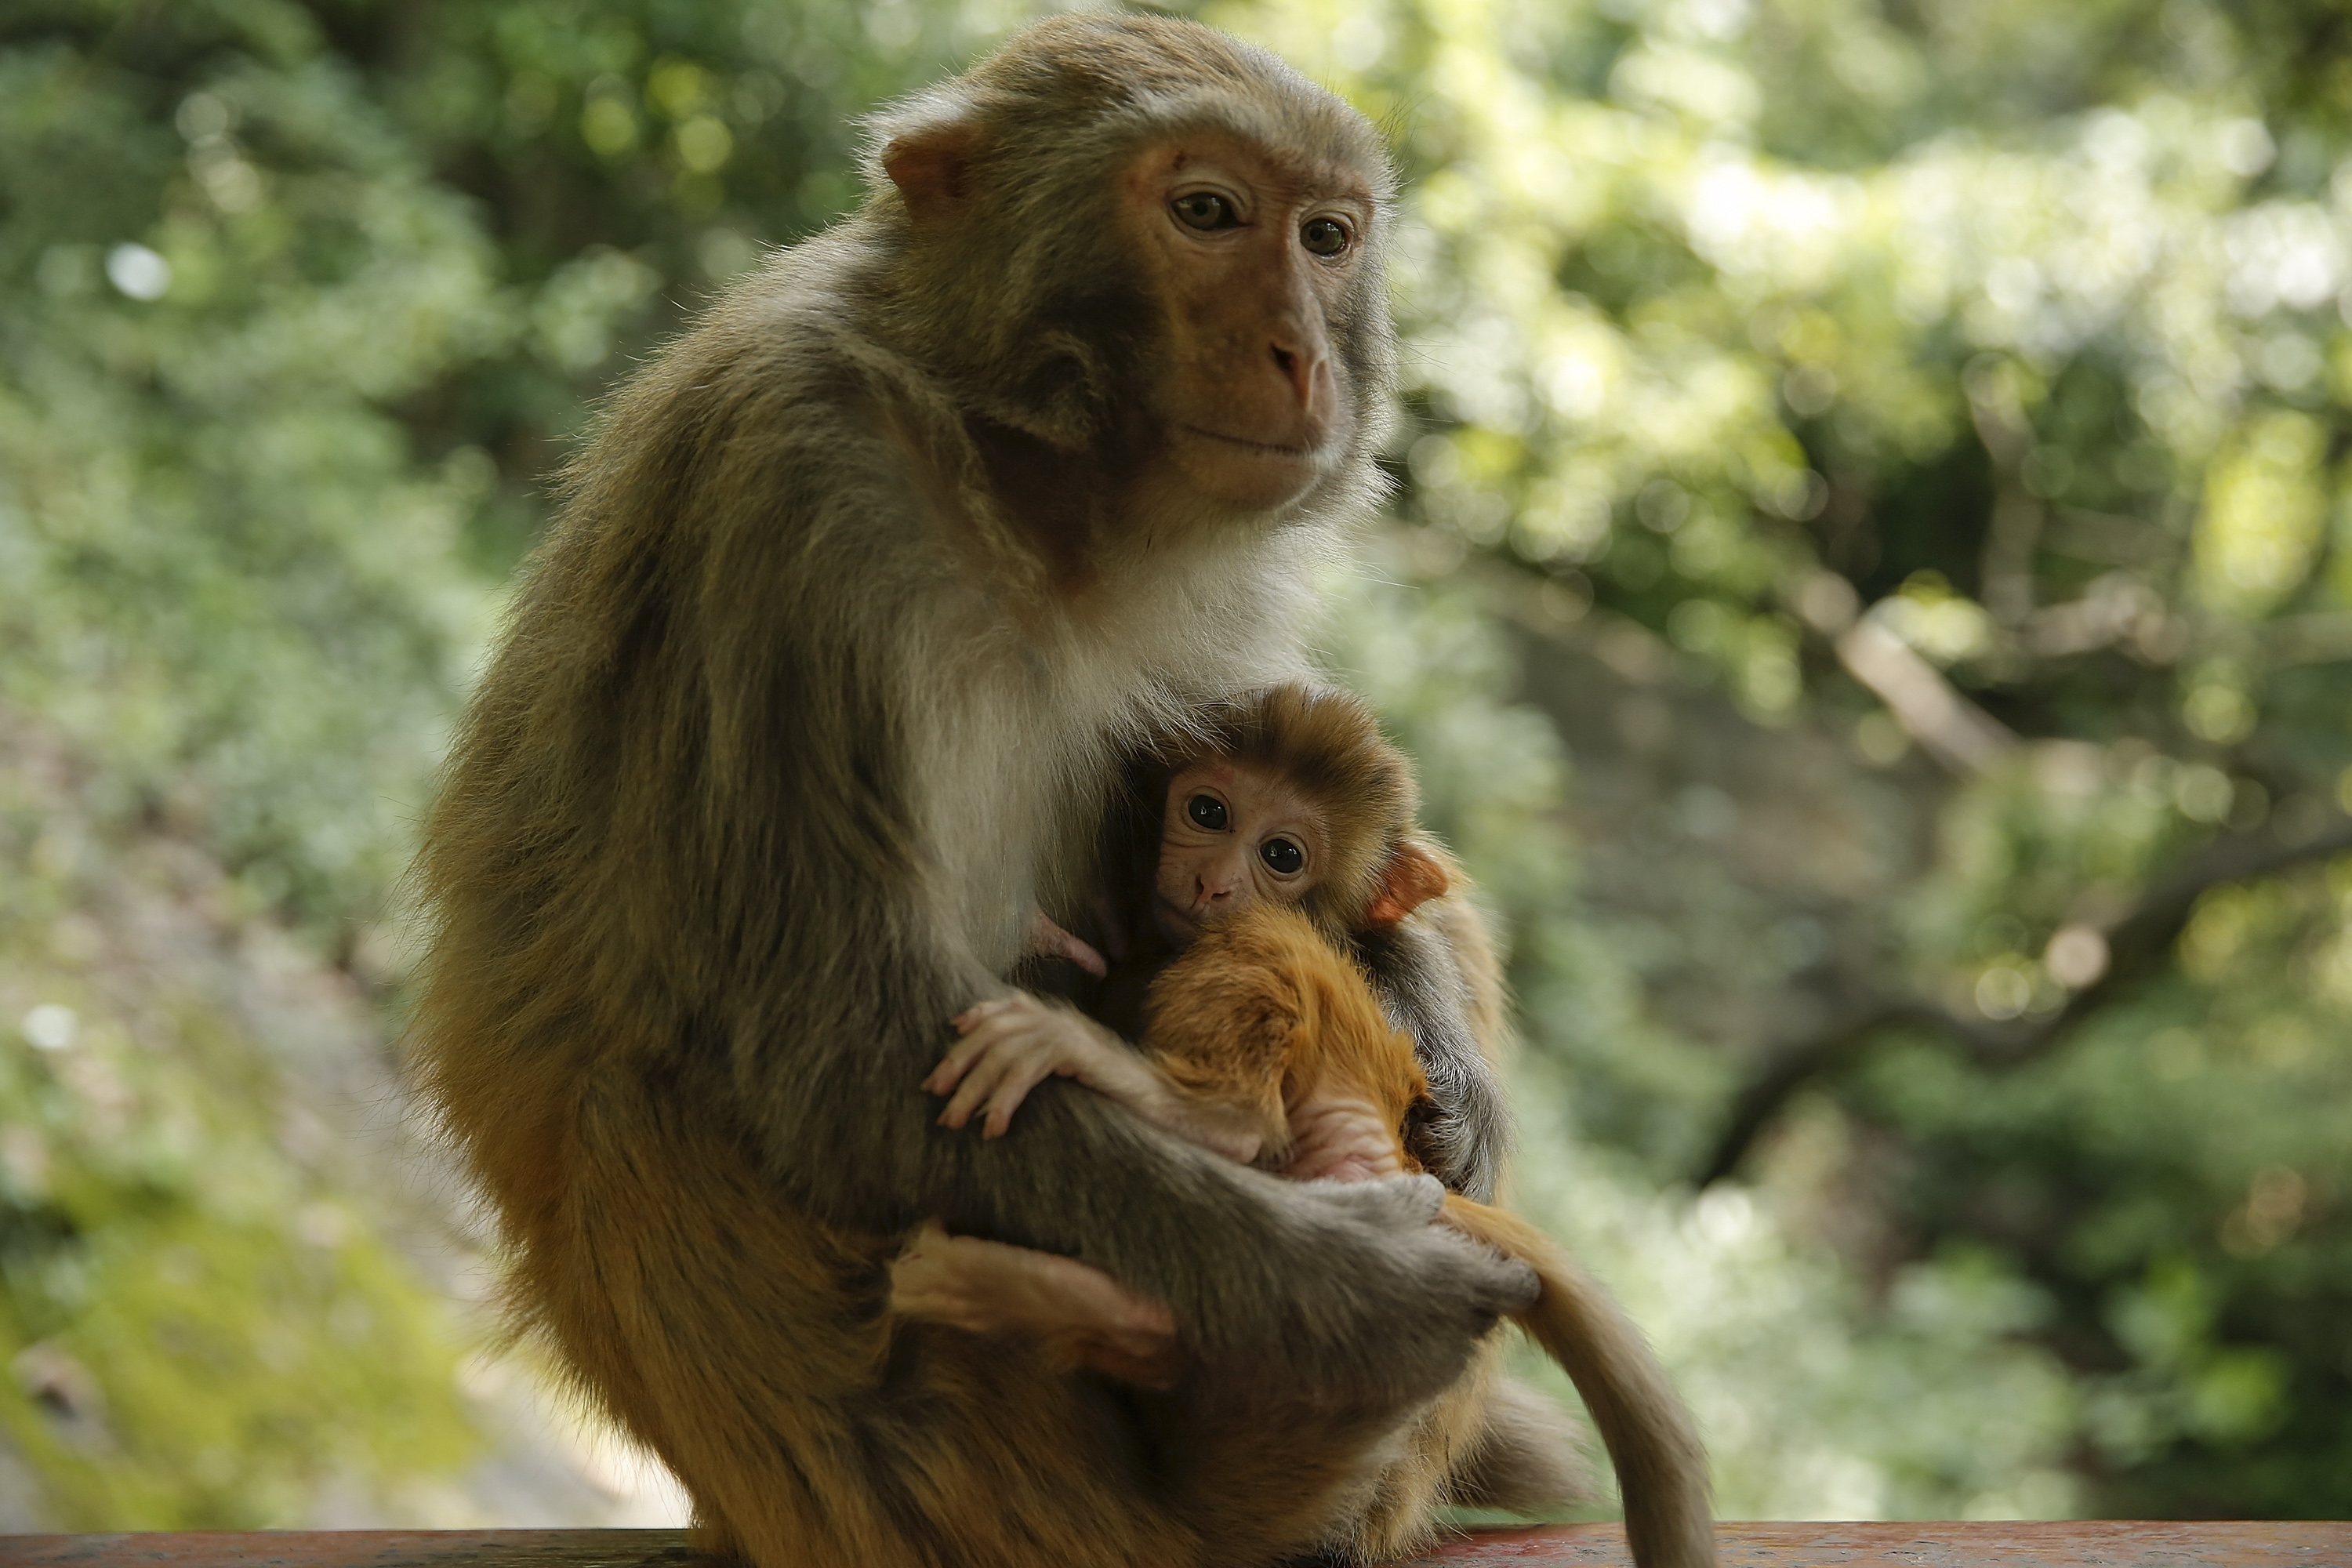 A macaque mother with her baby in Guiyang, China.